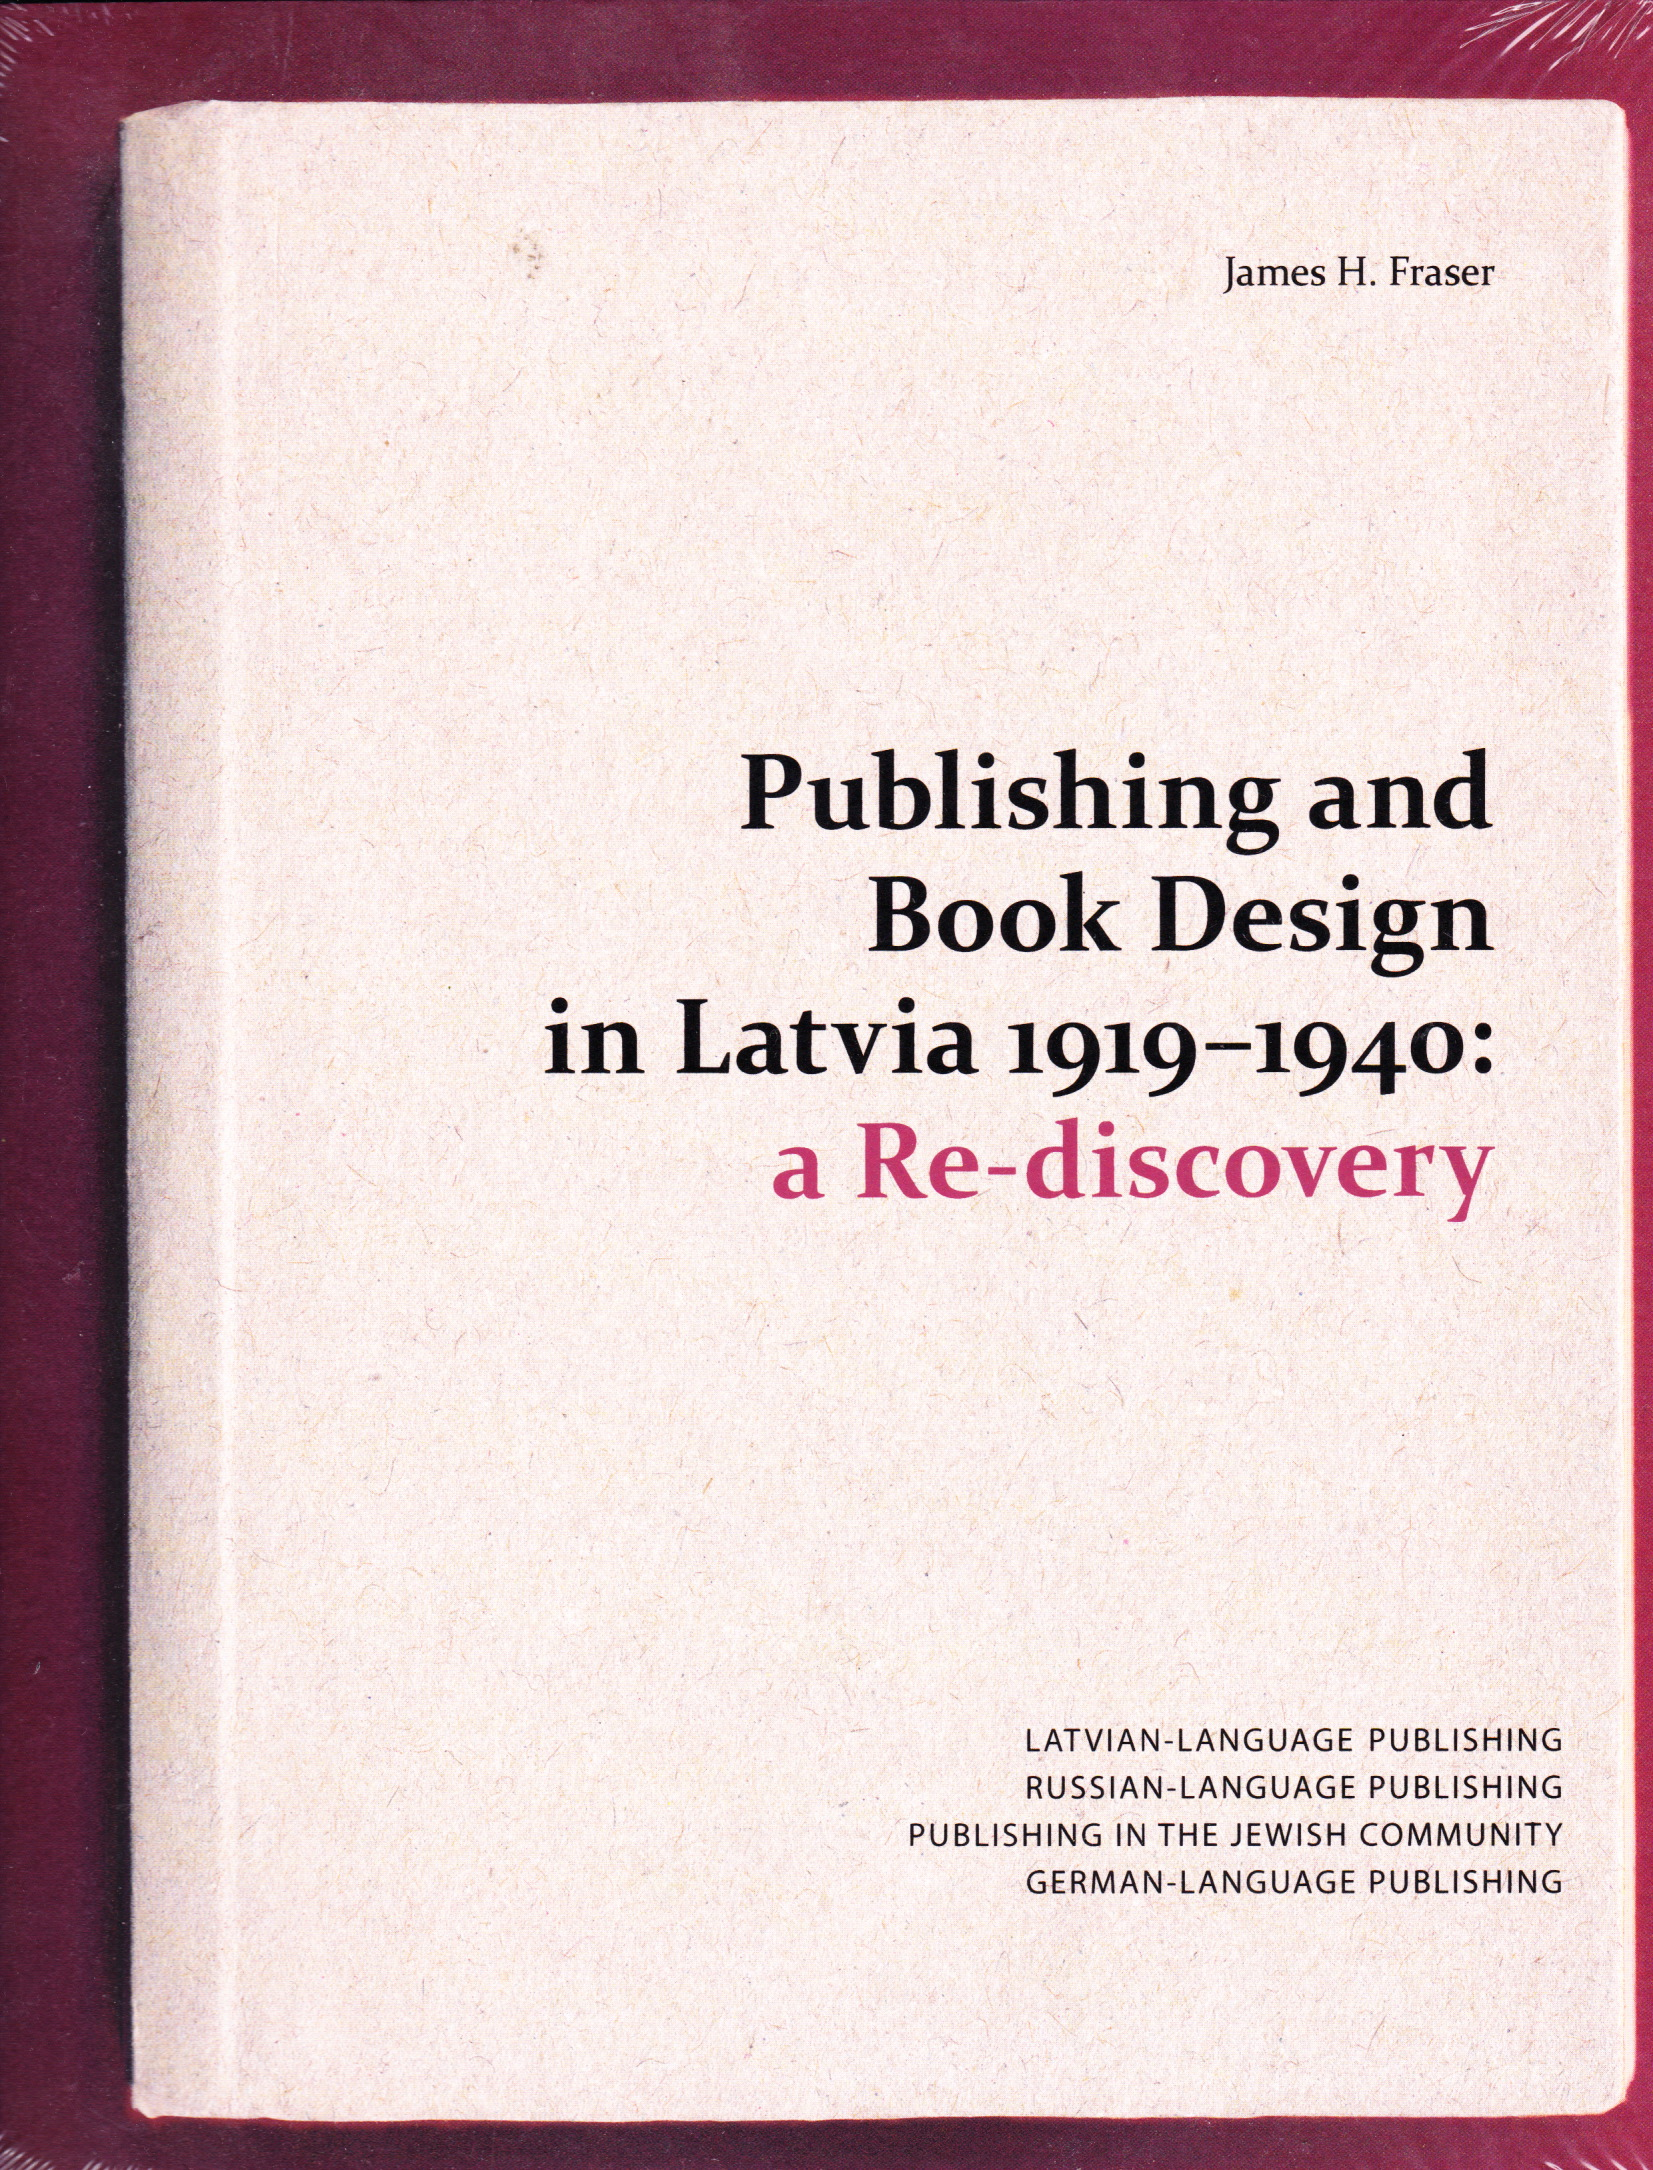 Image for Publishing and Book Design in Latvia 1919 - 1940: A Rediscovery.